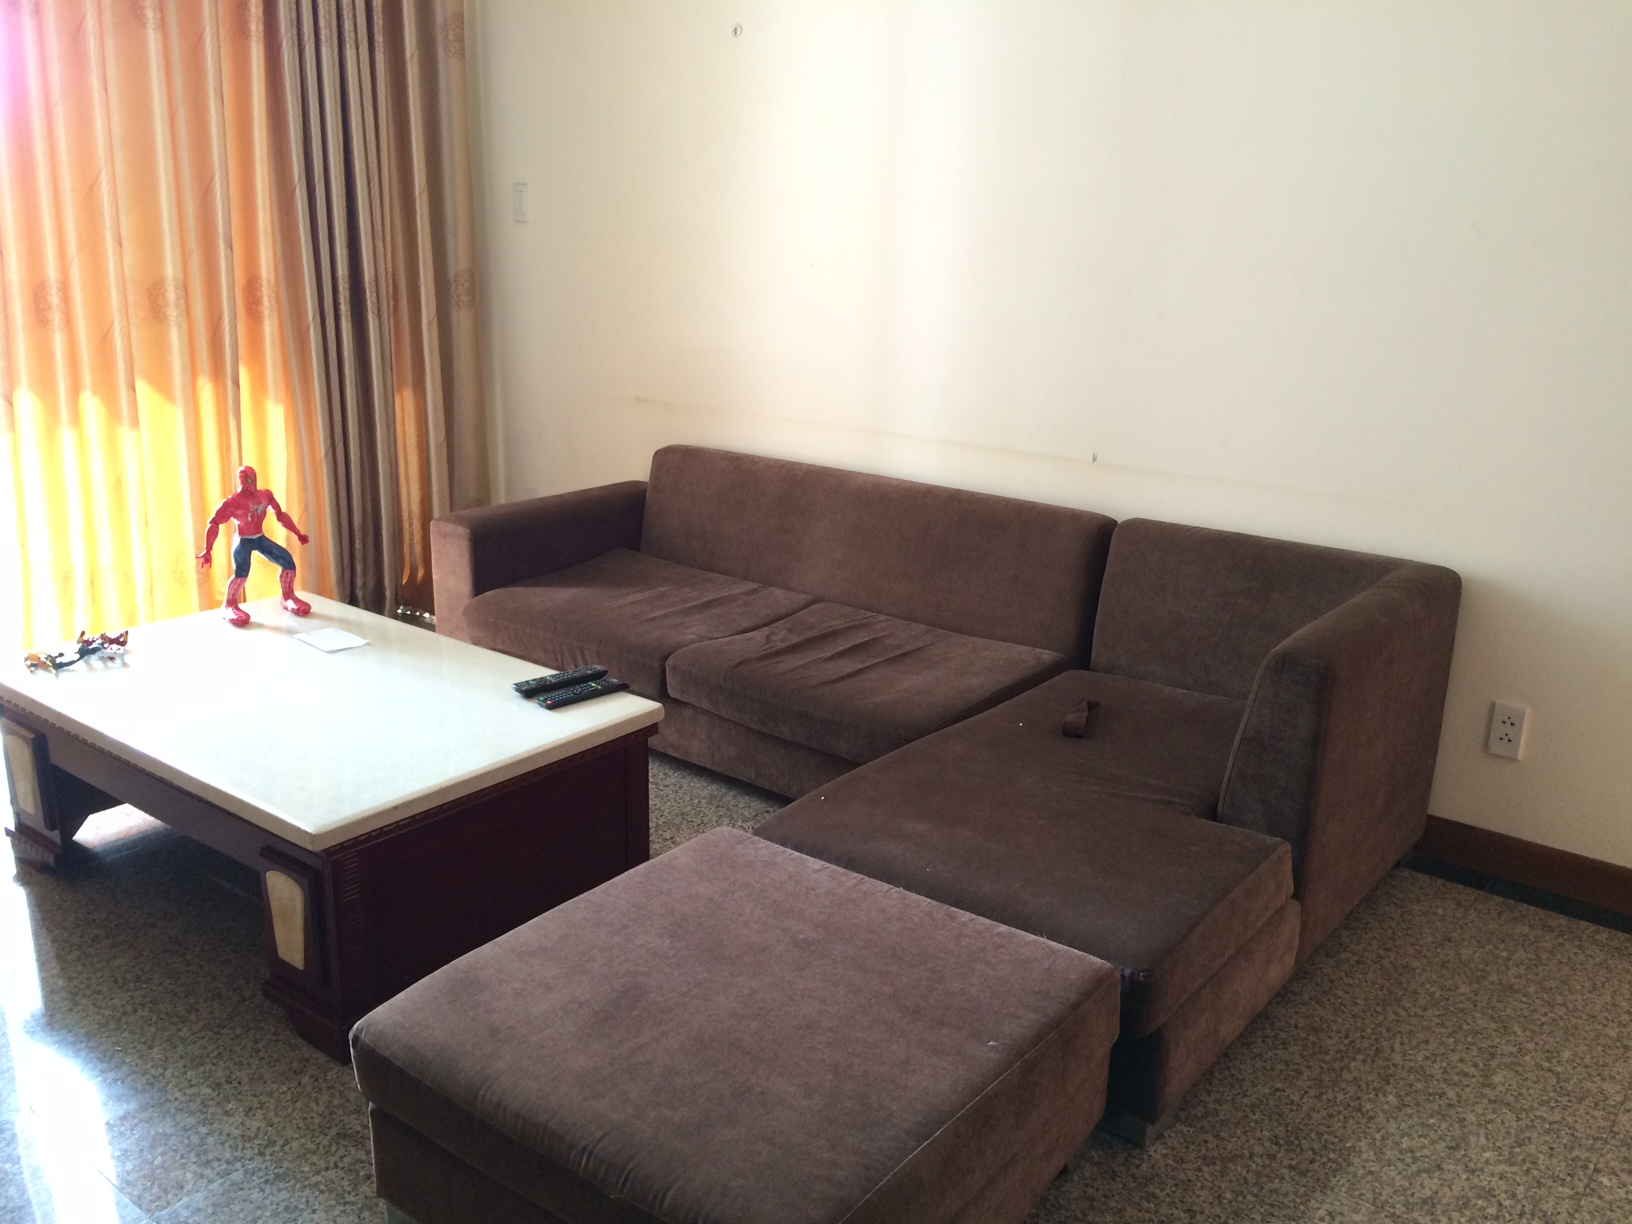 A NICE APARTMENT FOR RENT IN THAO DIEN WARD, DISTRICT 2.